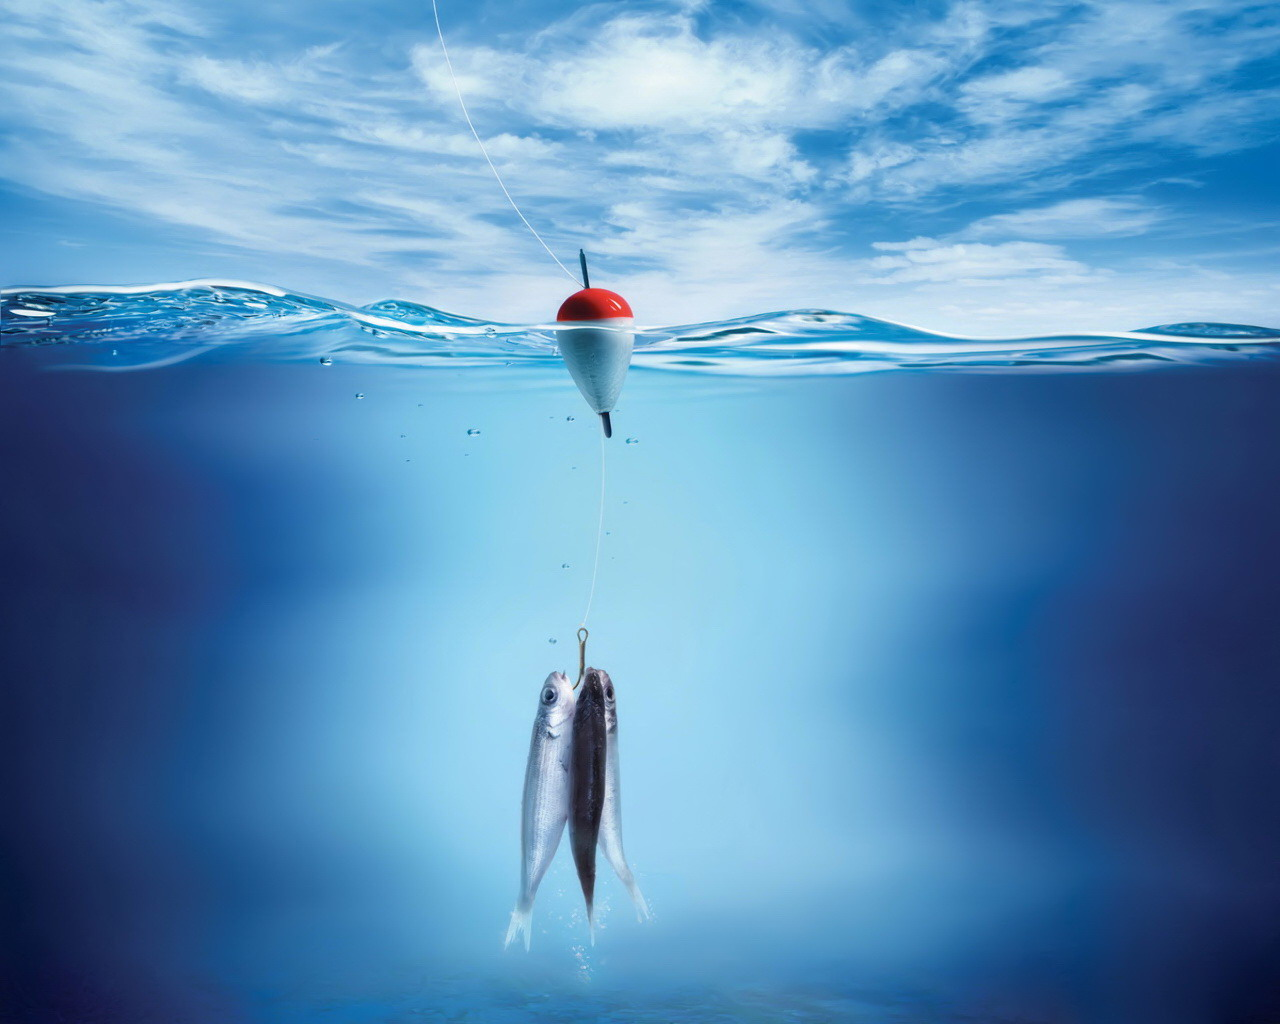 Fishing Lure Wallpapers Life Of A Fishing Lure Myspace Backgrounds 1280x1024